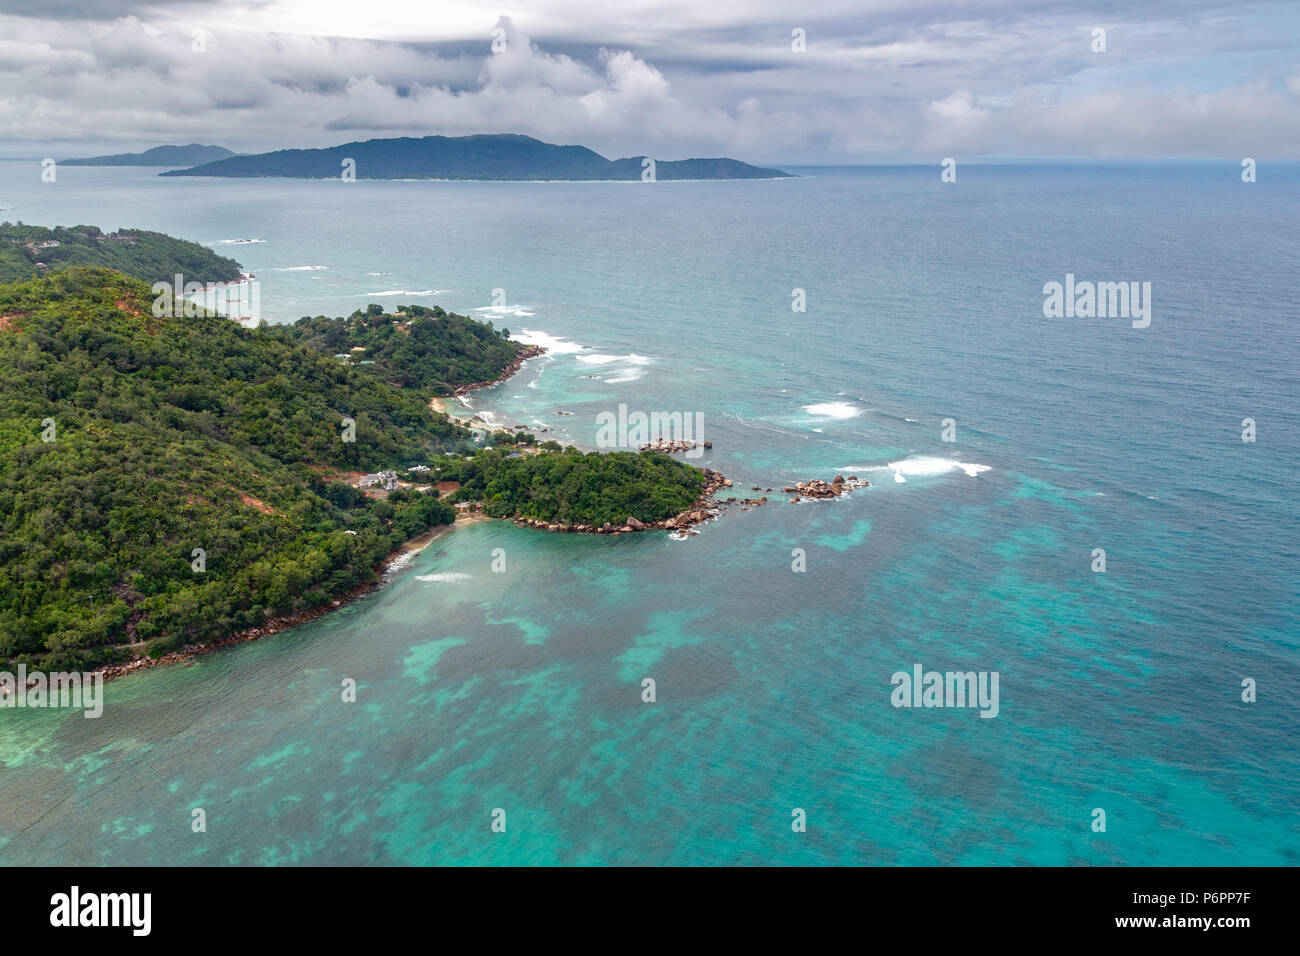 Aerial view of the Anse Consolation on Praslin, Seychelles in the Indian Ocean. - Stock Image